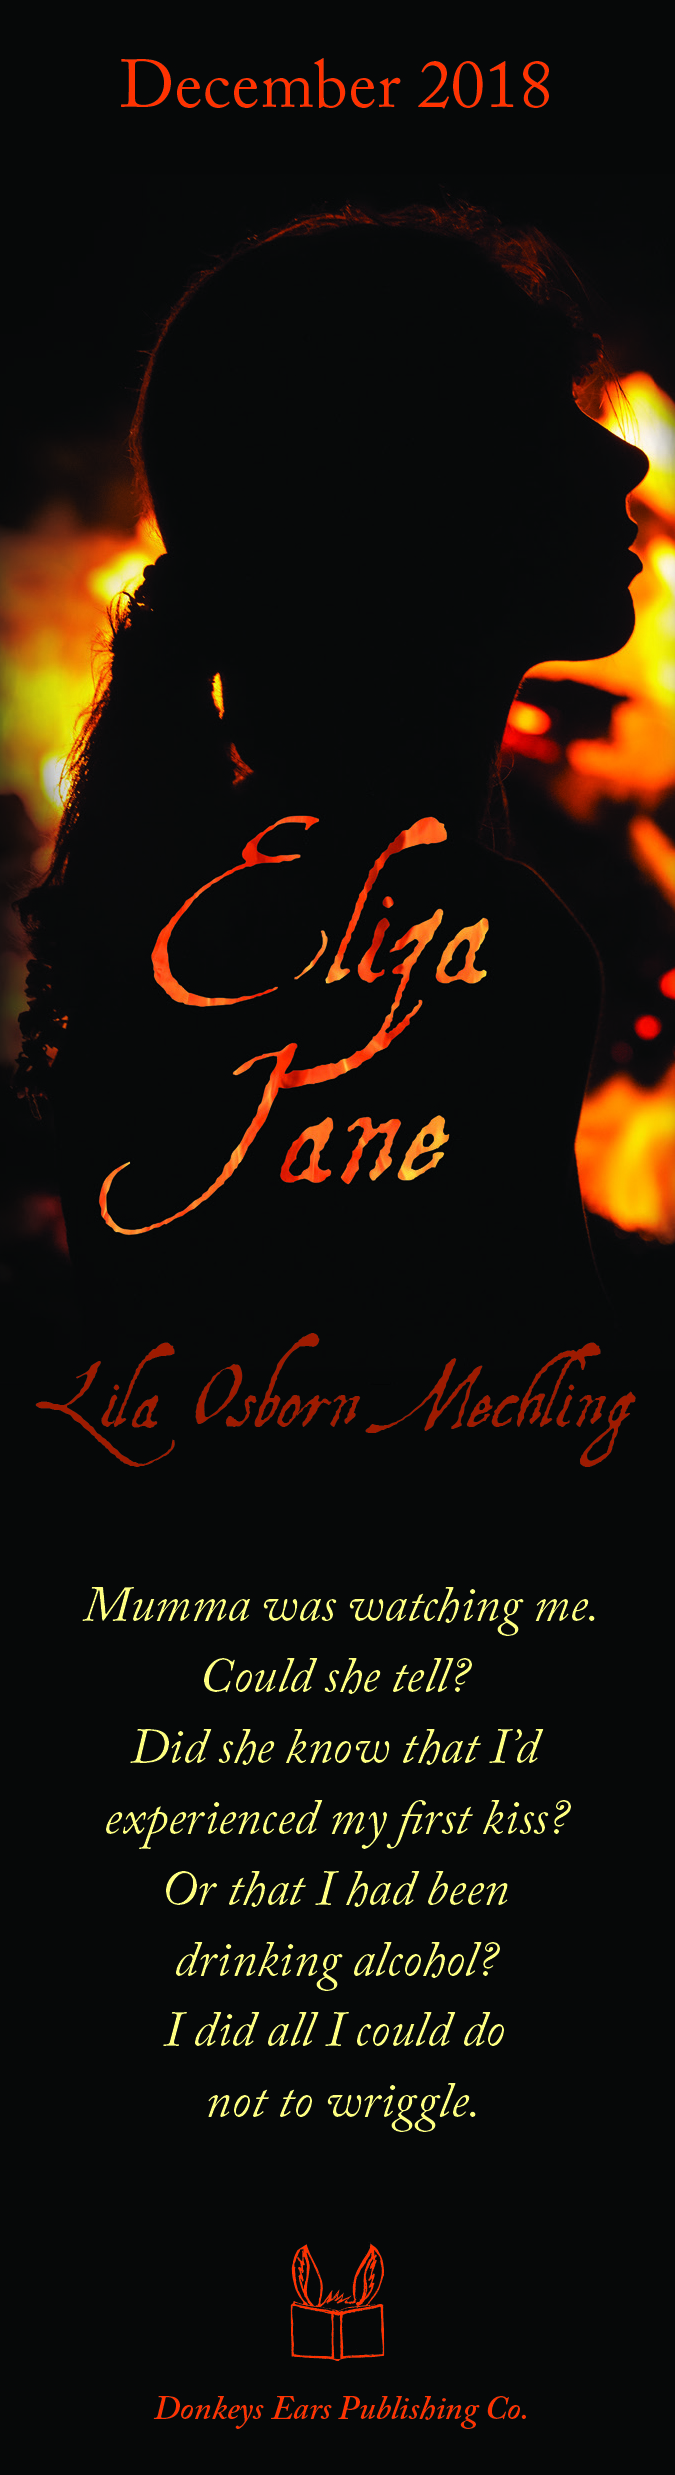 Bookmark for Eliza Jane by Lila Osborn Mechling (Donkey Ears Publishing, December 2018)